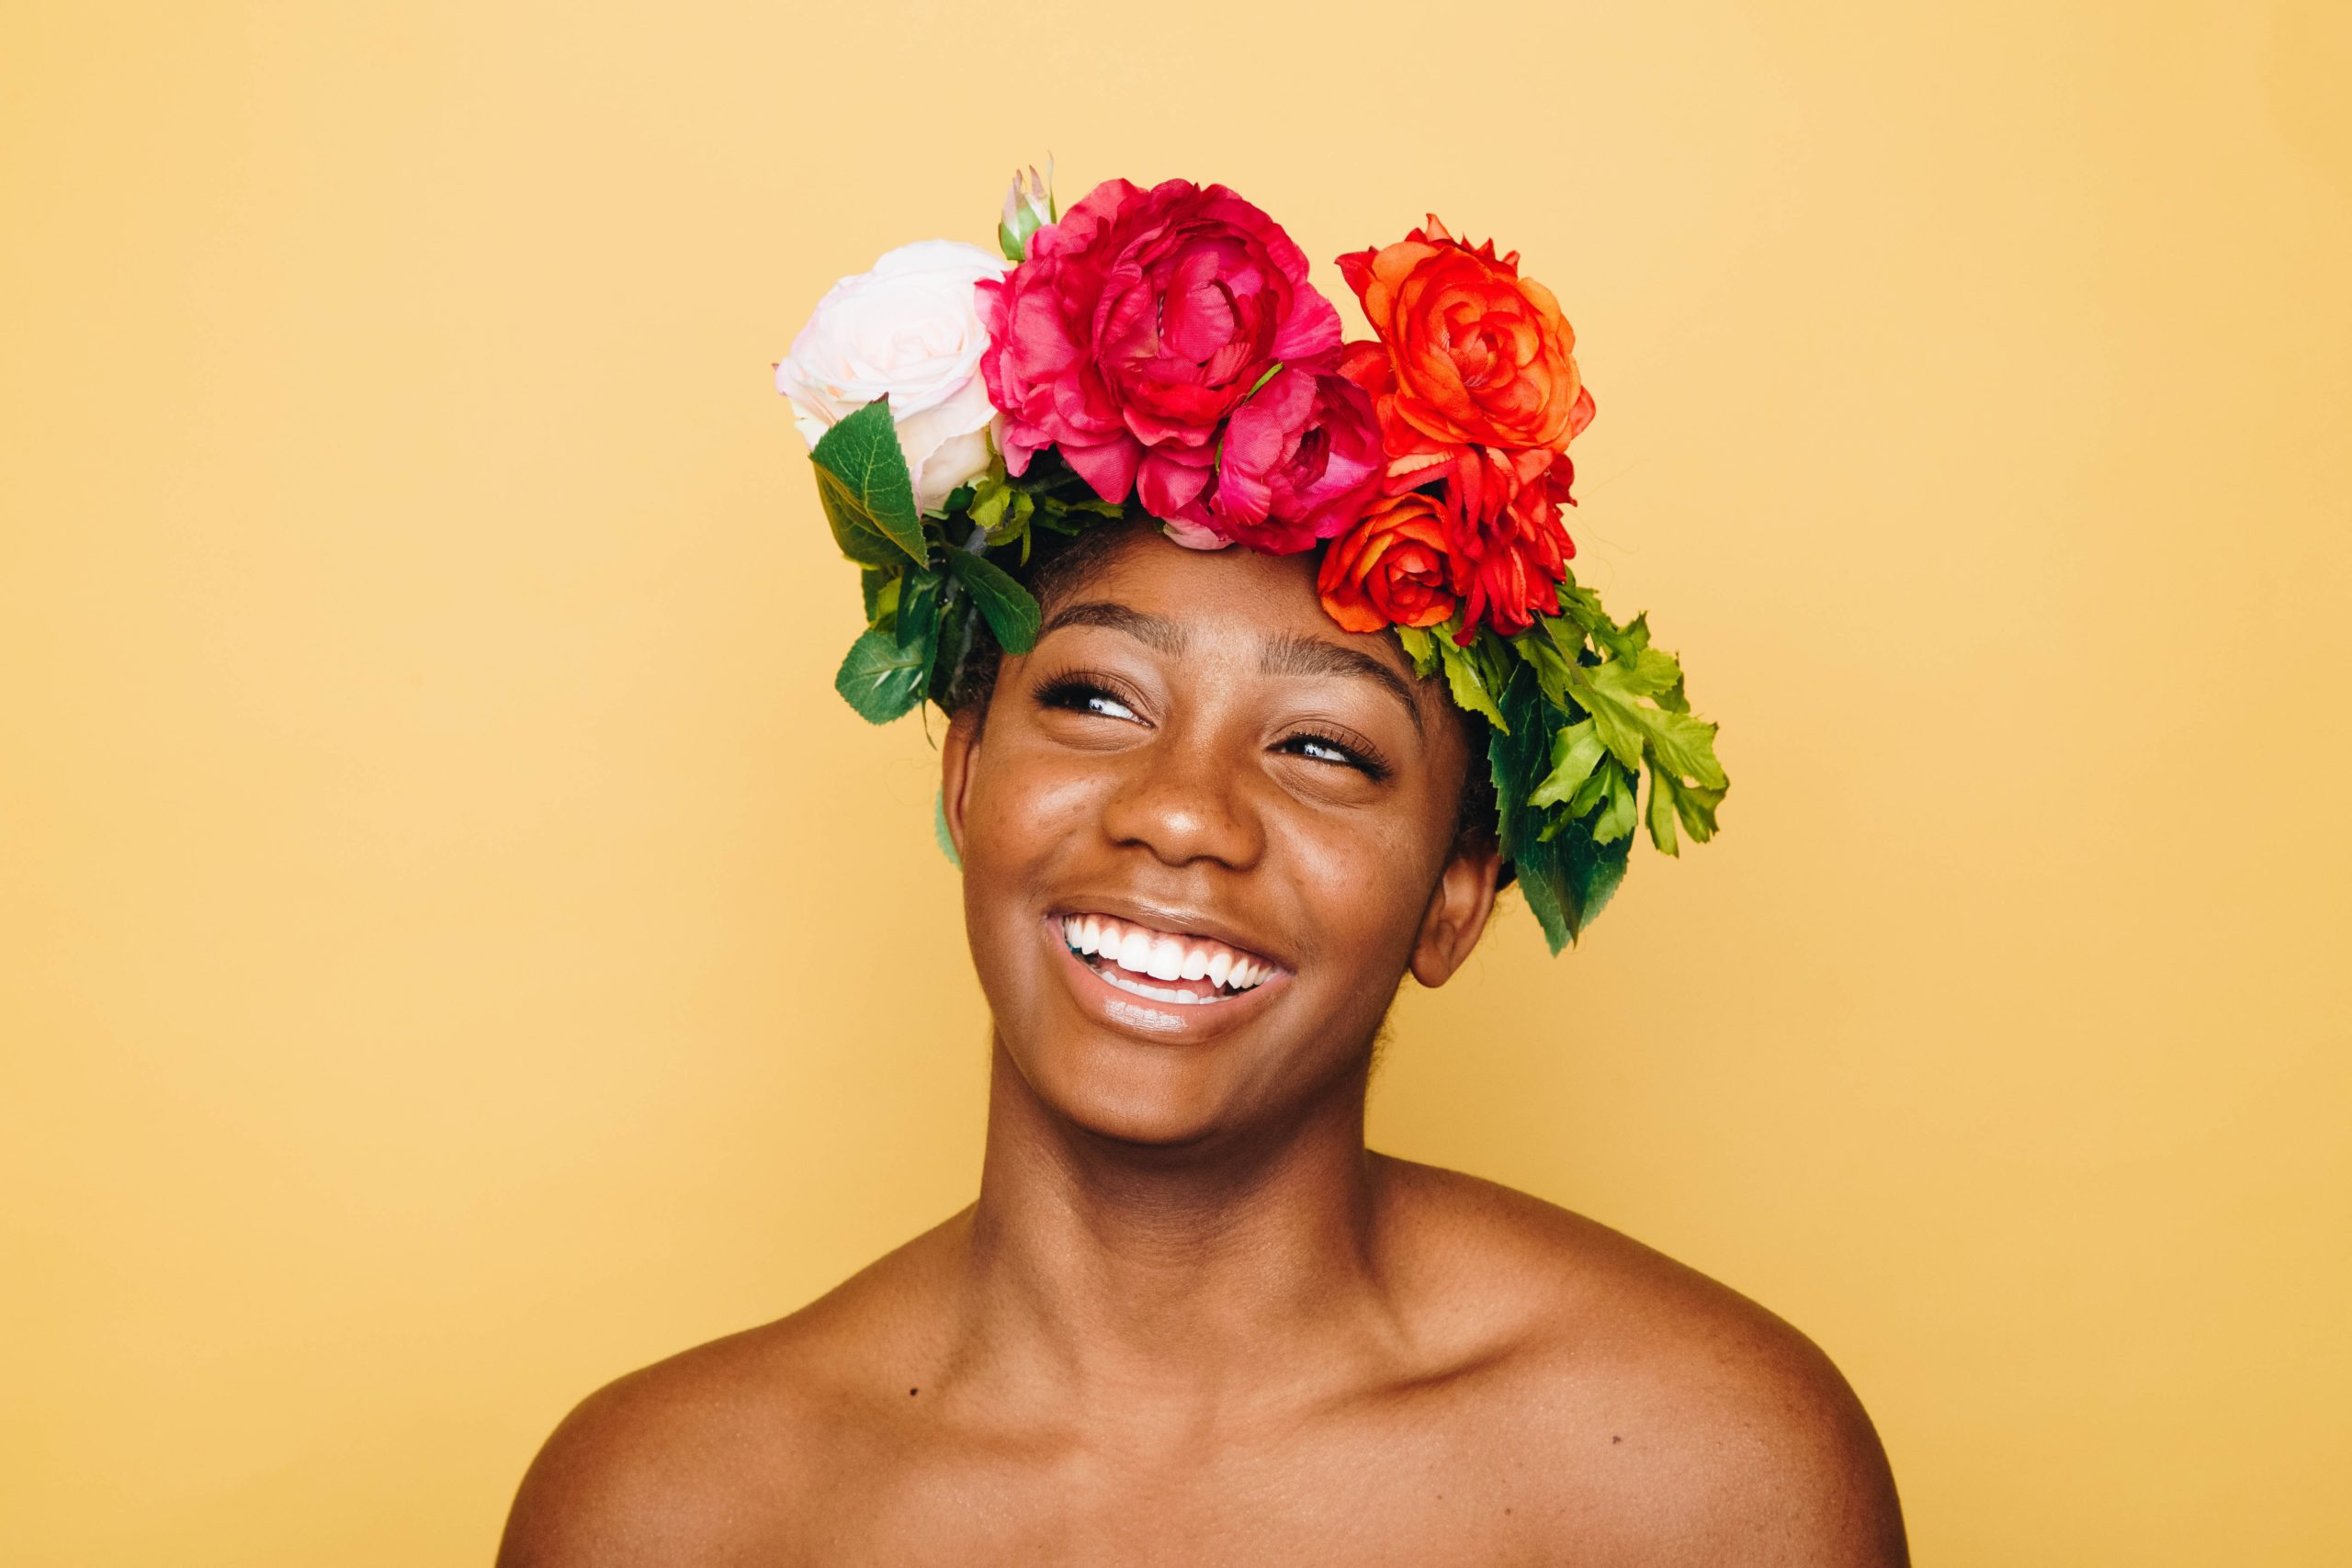 Confused by natural, organic or vegan beauty?